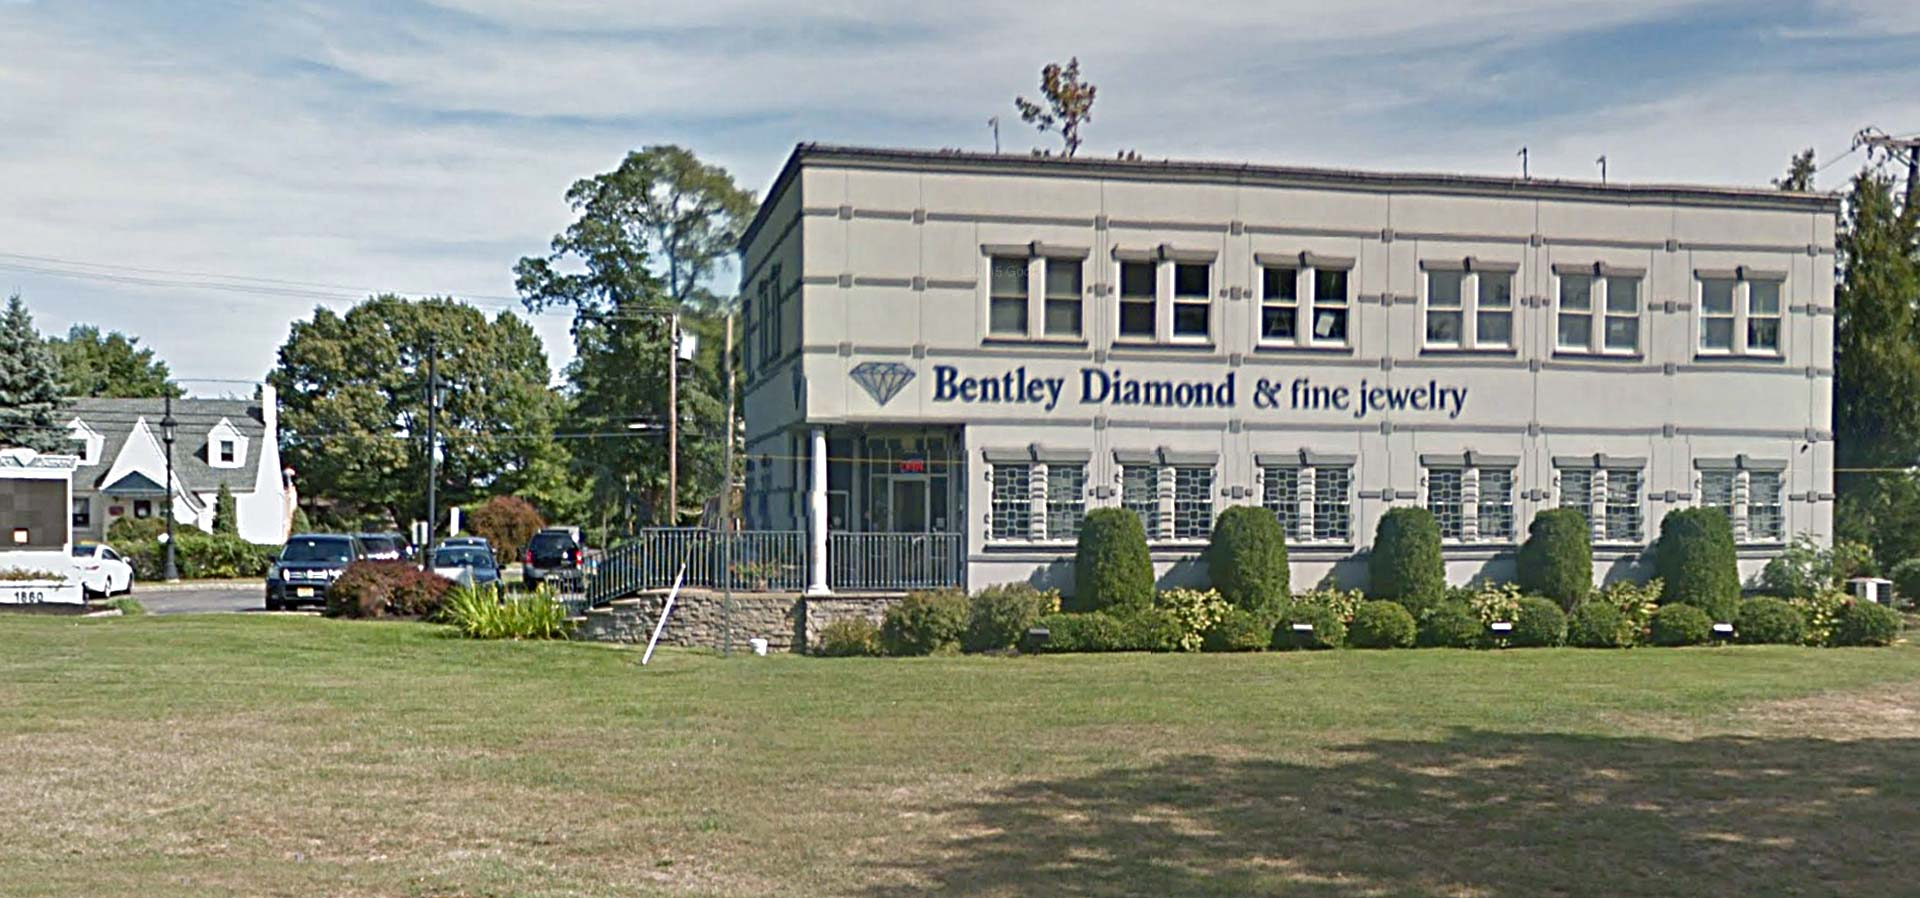 Bentley diamond new jersey 39 s leading diamond experts for Directions to garden state parkway south